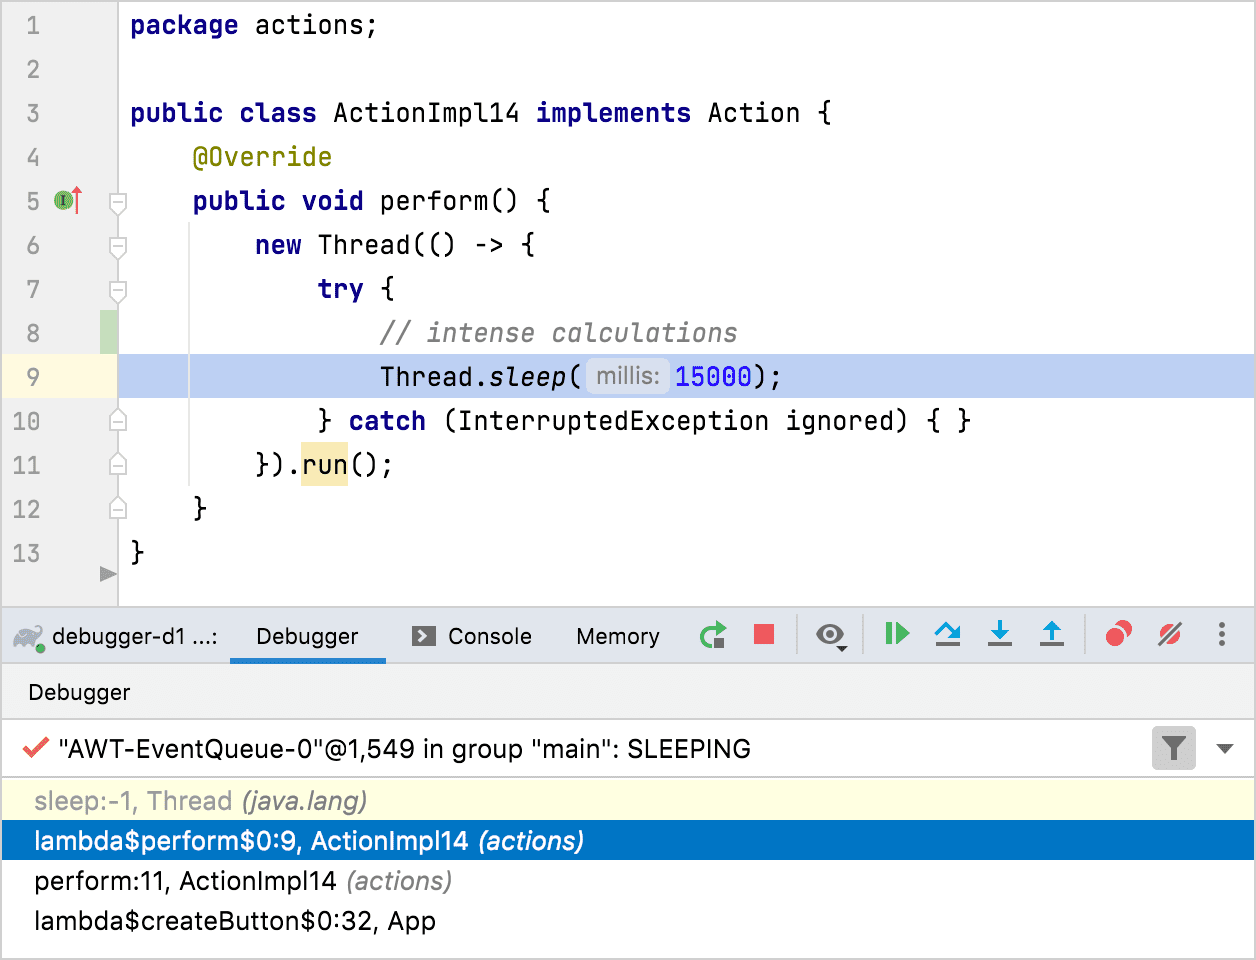 You can examine threads in the Debugger tab